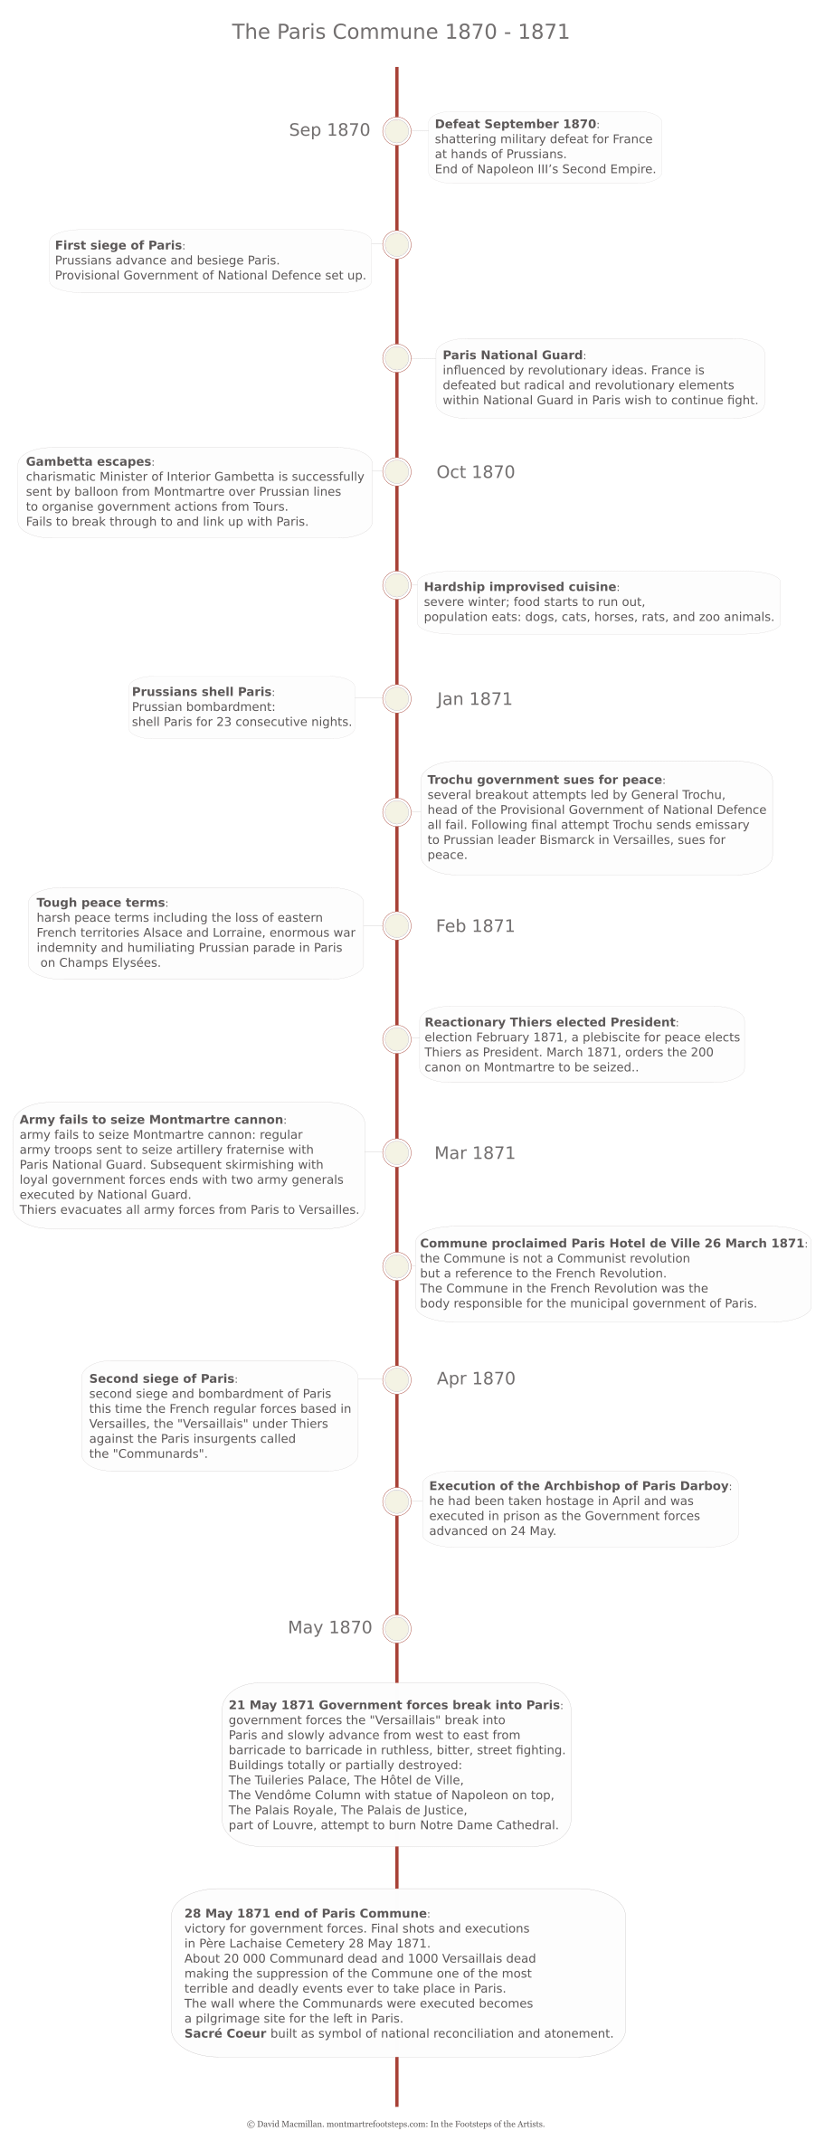 A vertical infographic timeline giving text details of the major events leading up to and including the Paris commune of 1870 to 1871.